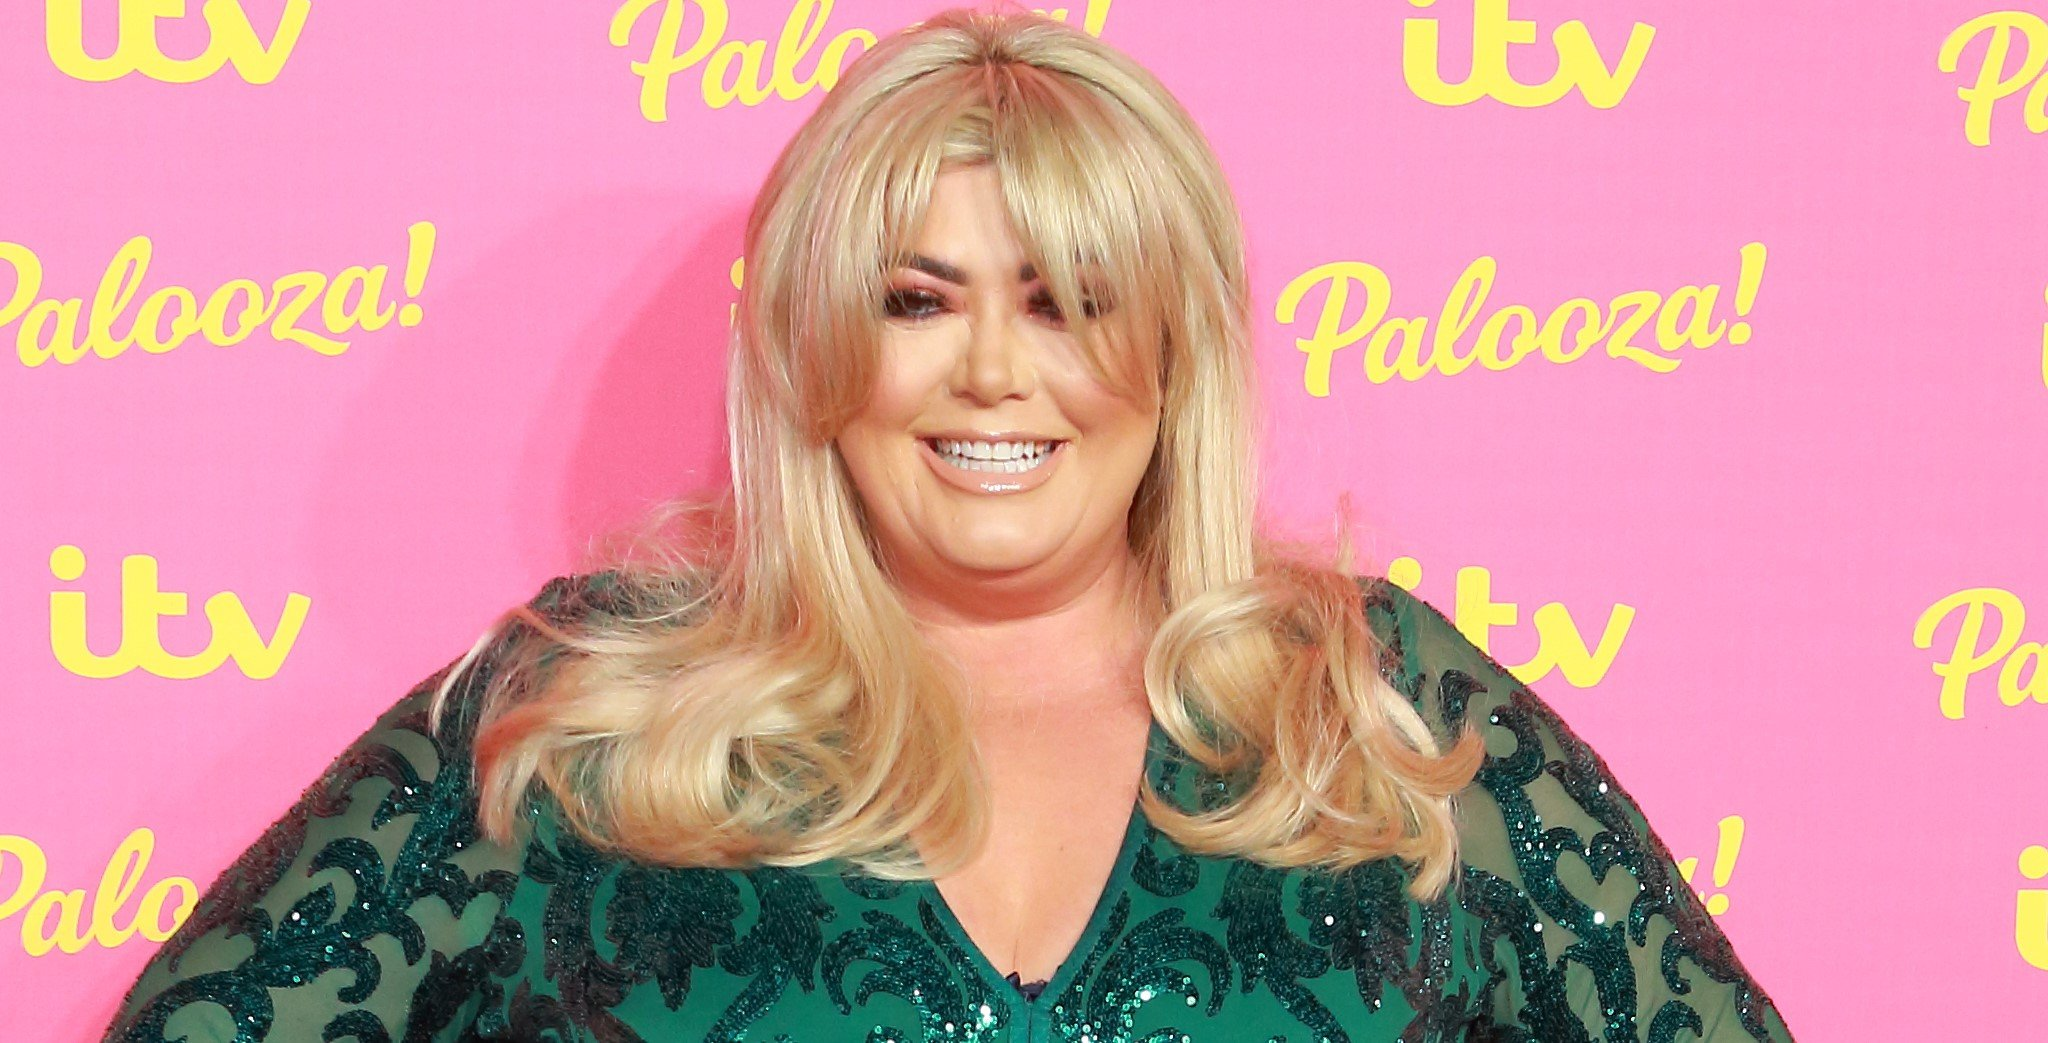 Gemma Collins impresses with X Factor audition for Simon Cowell